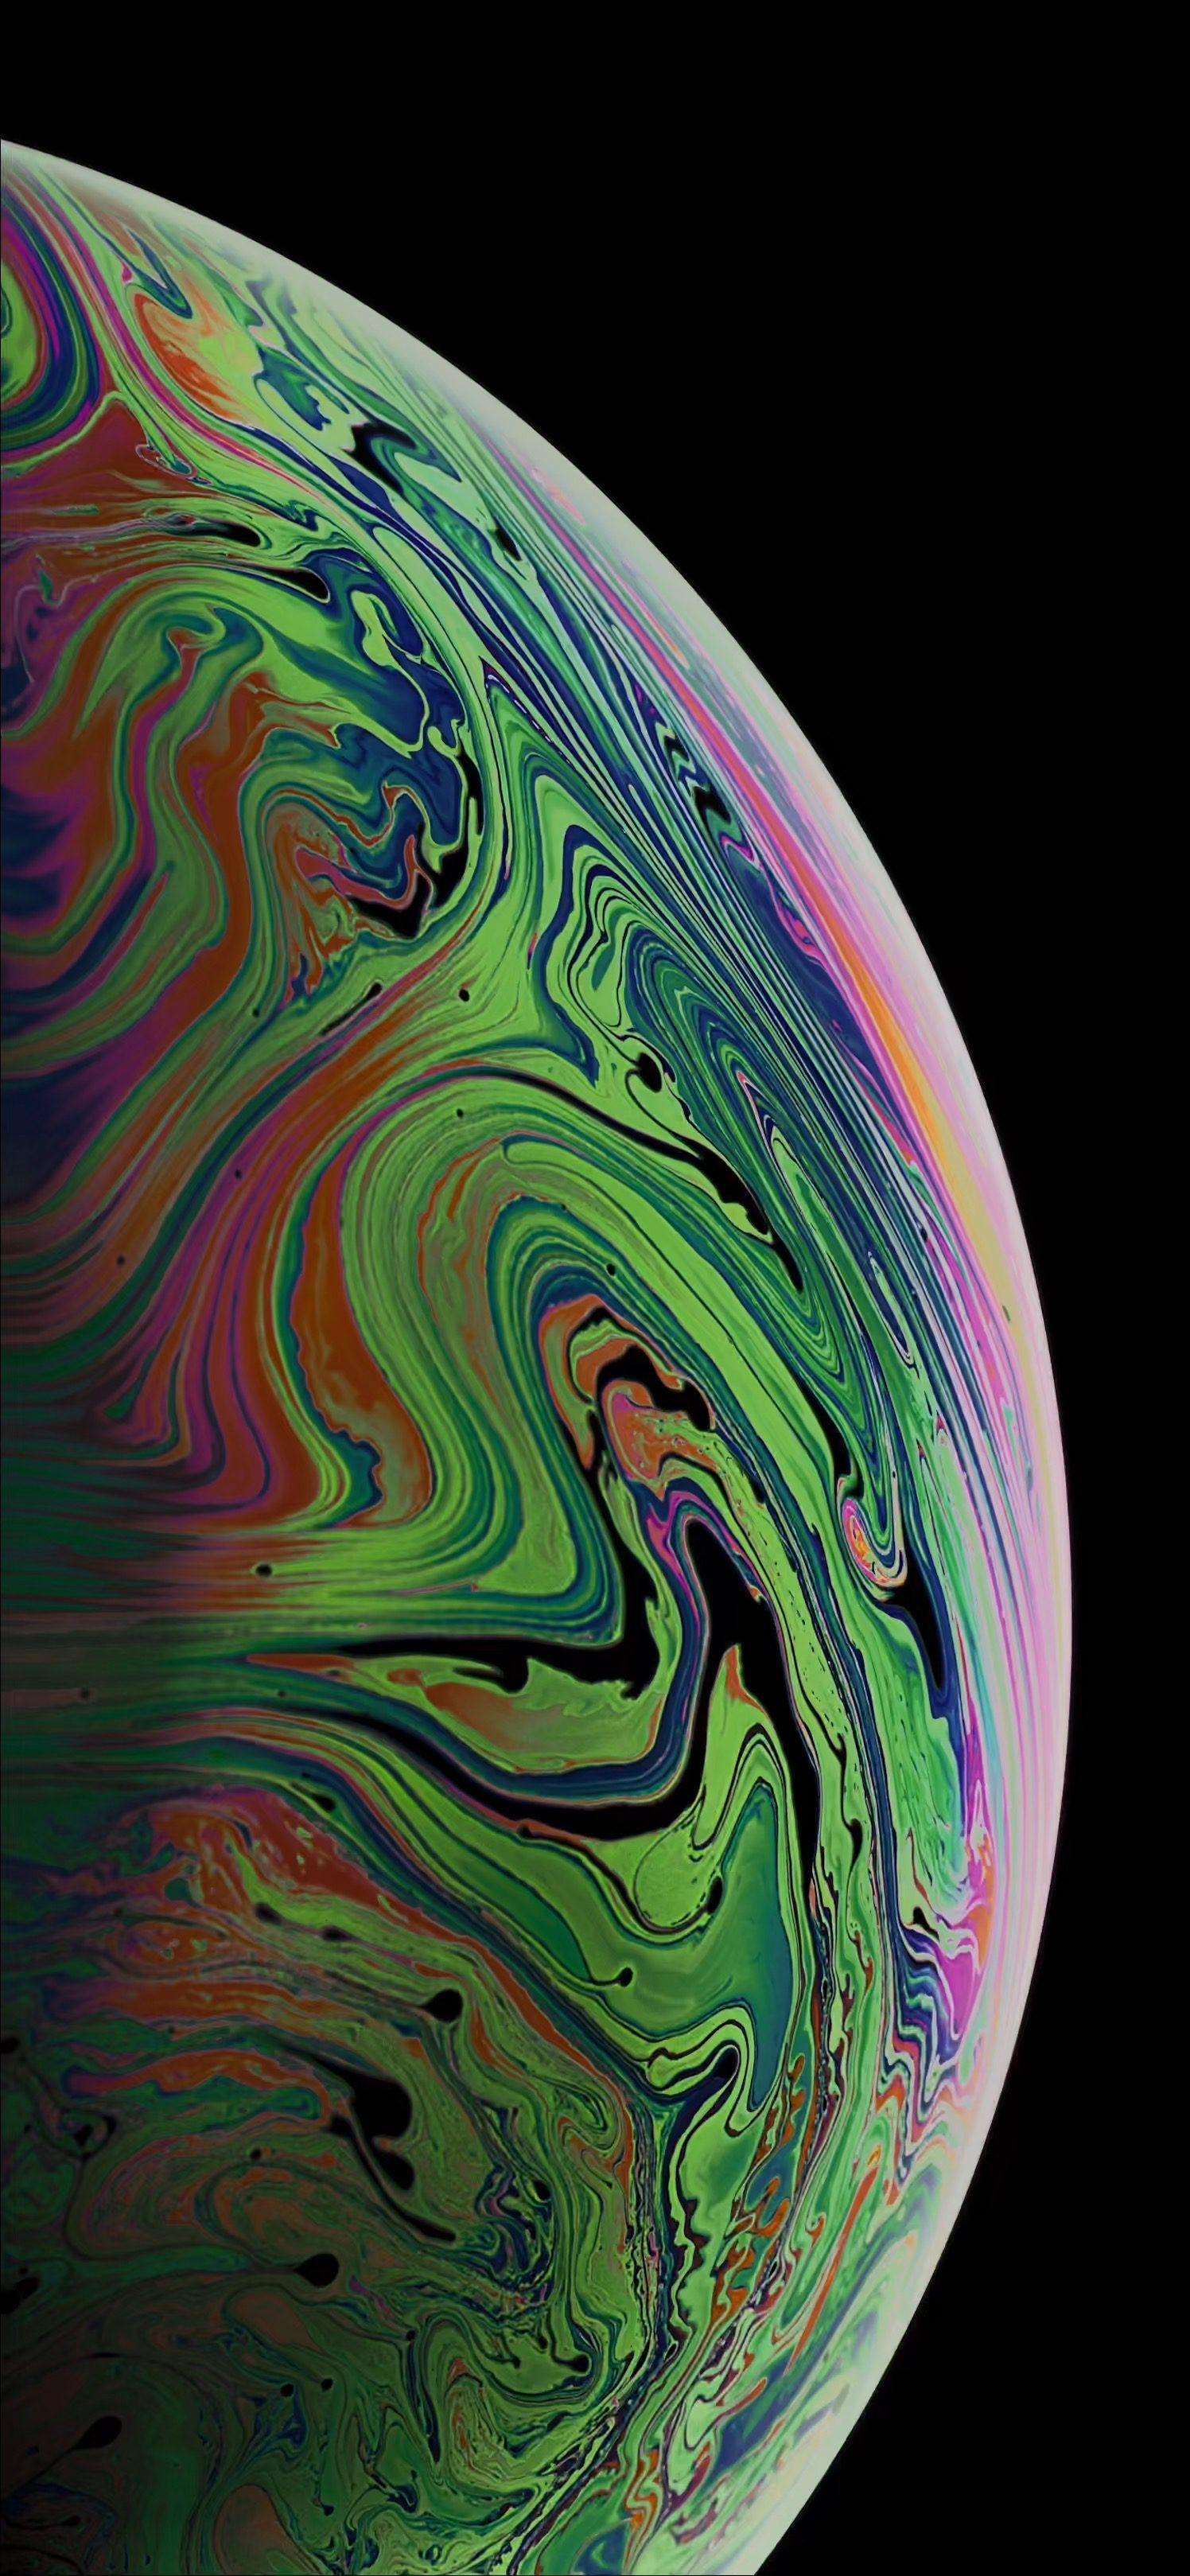 Iphone Xs 4k Wallpapers Wallpaper Cave